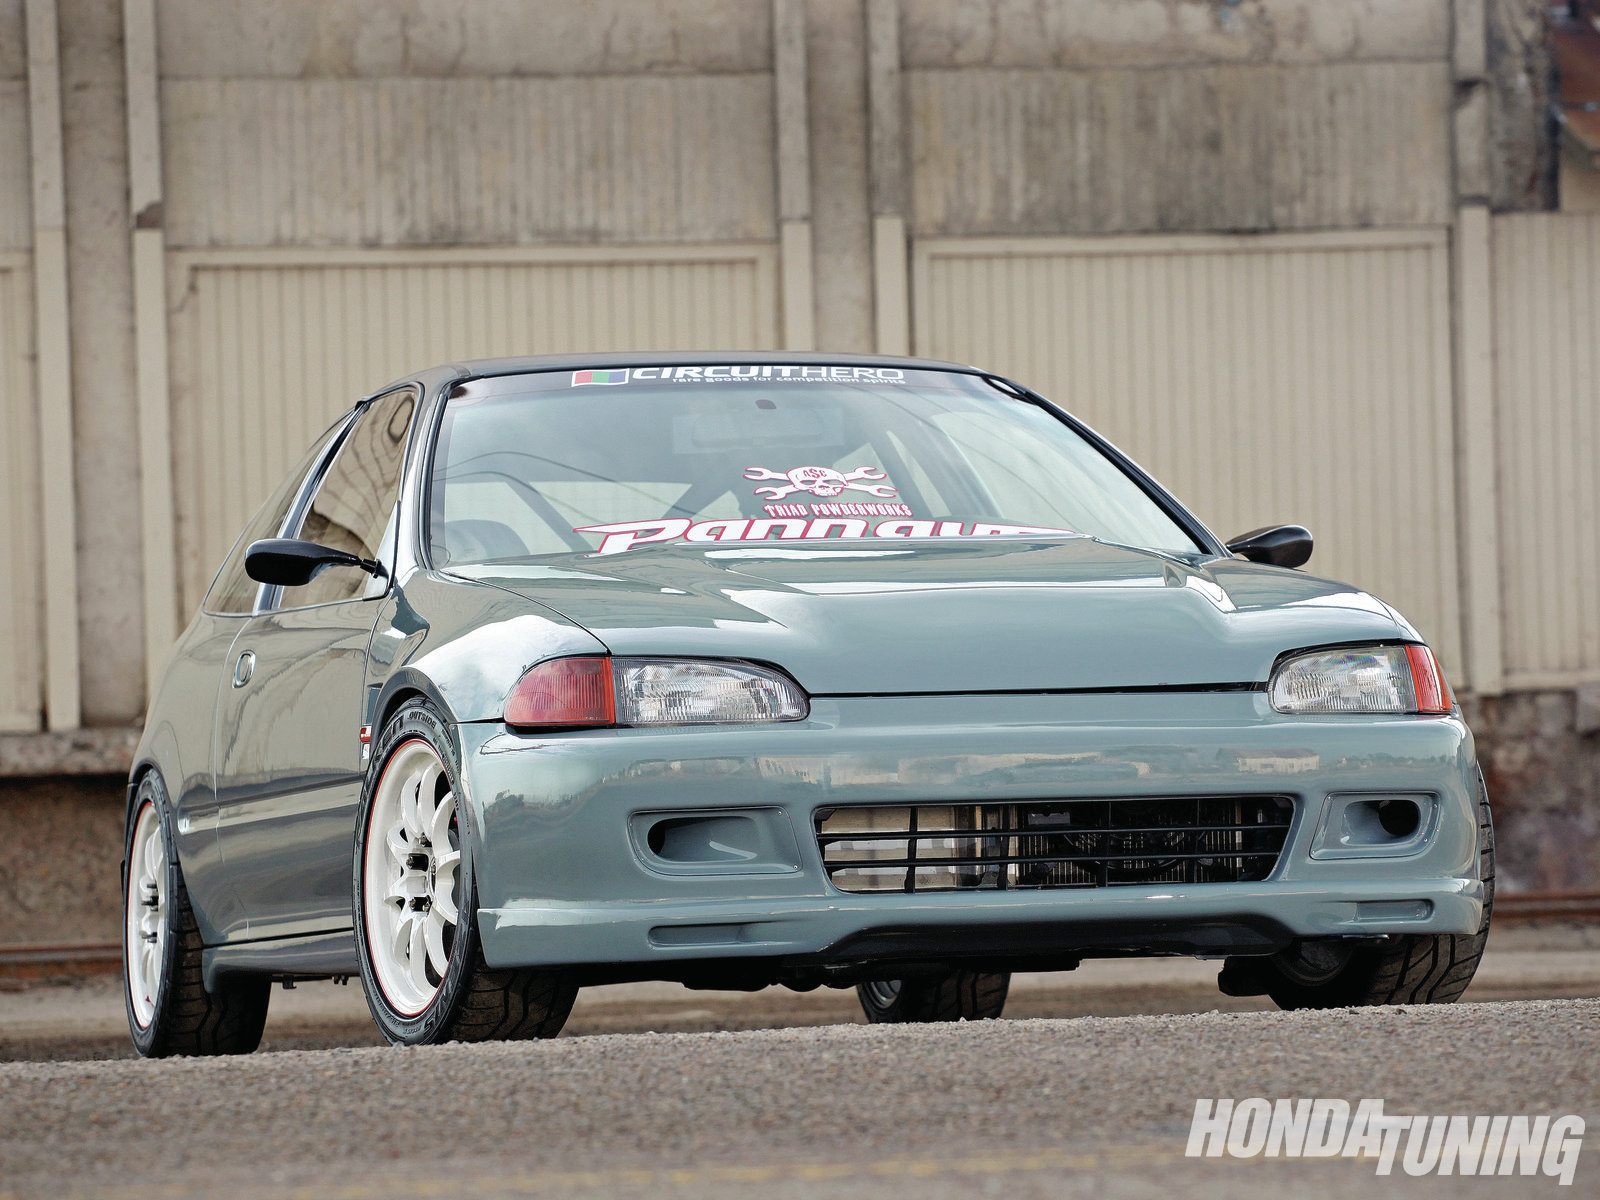 1993 Honda Civic CX   Gray Matter   Honda Tuning Magazine 1600x1200